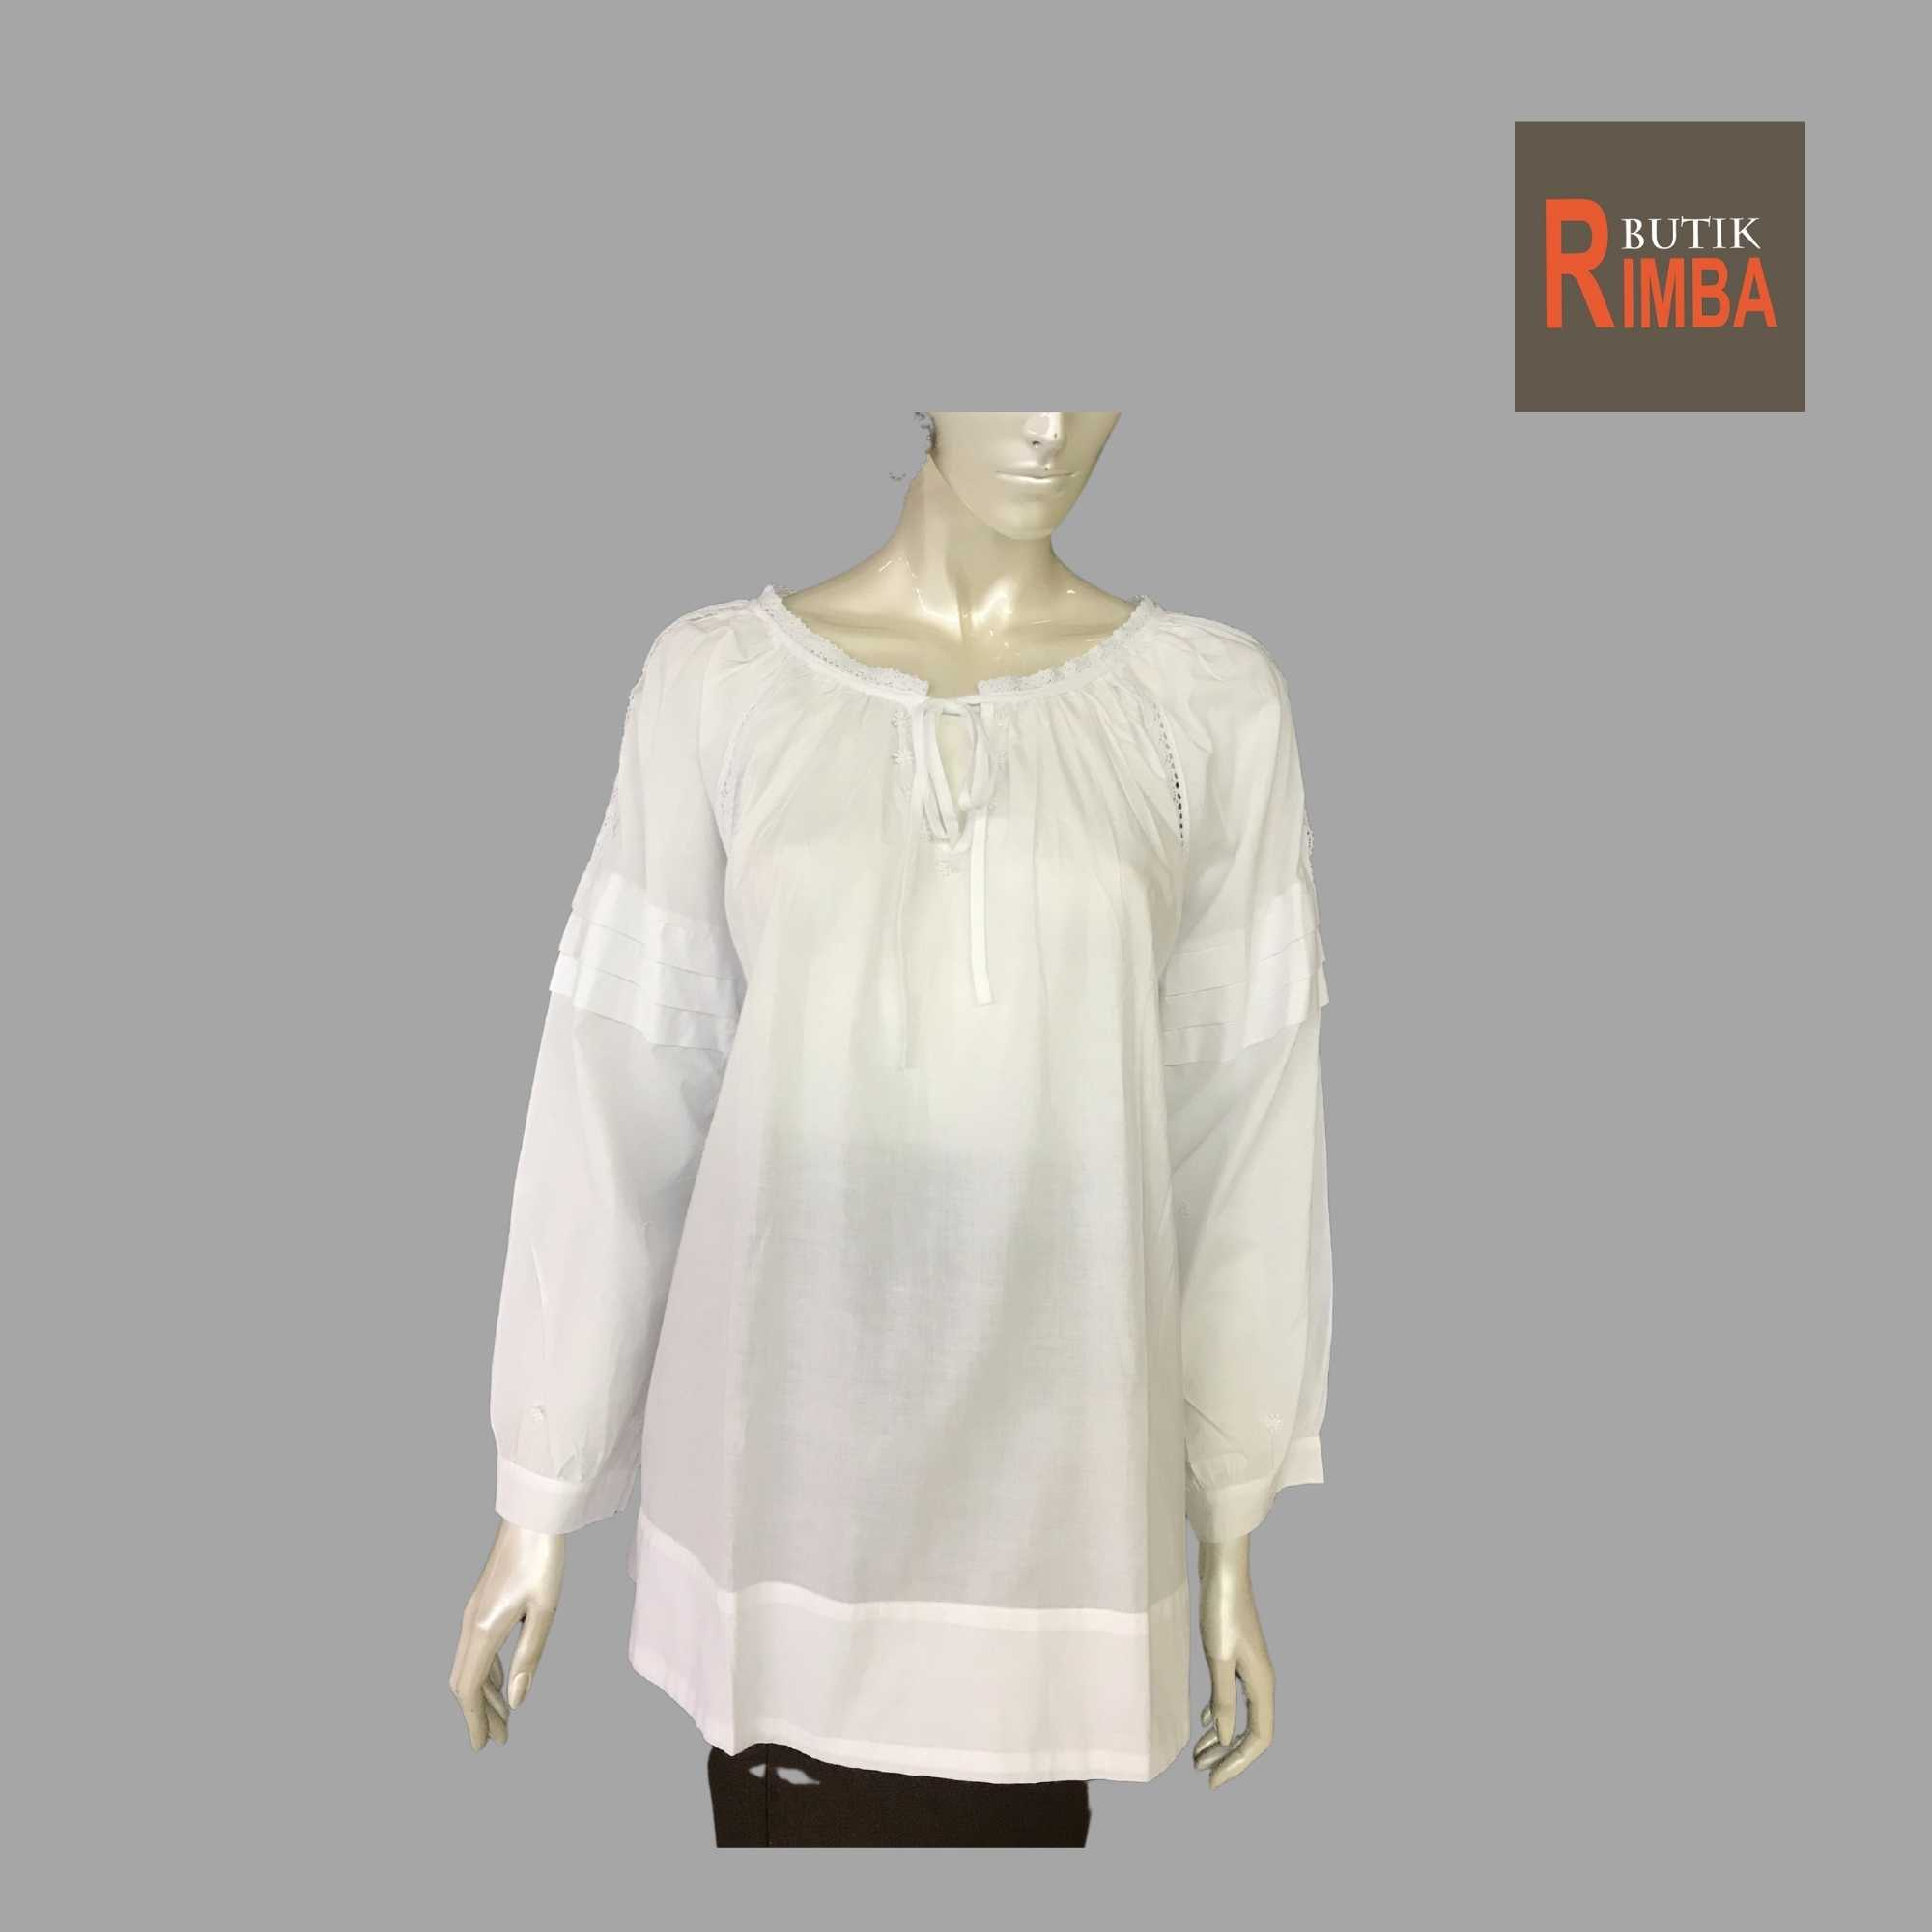 WOMEN CASUAL AND COMFORTABLE WHITE BLOUSE COTTON FREE SIZE PATTERN 14